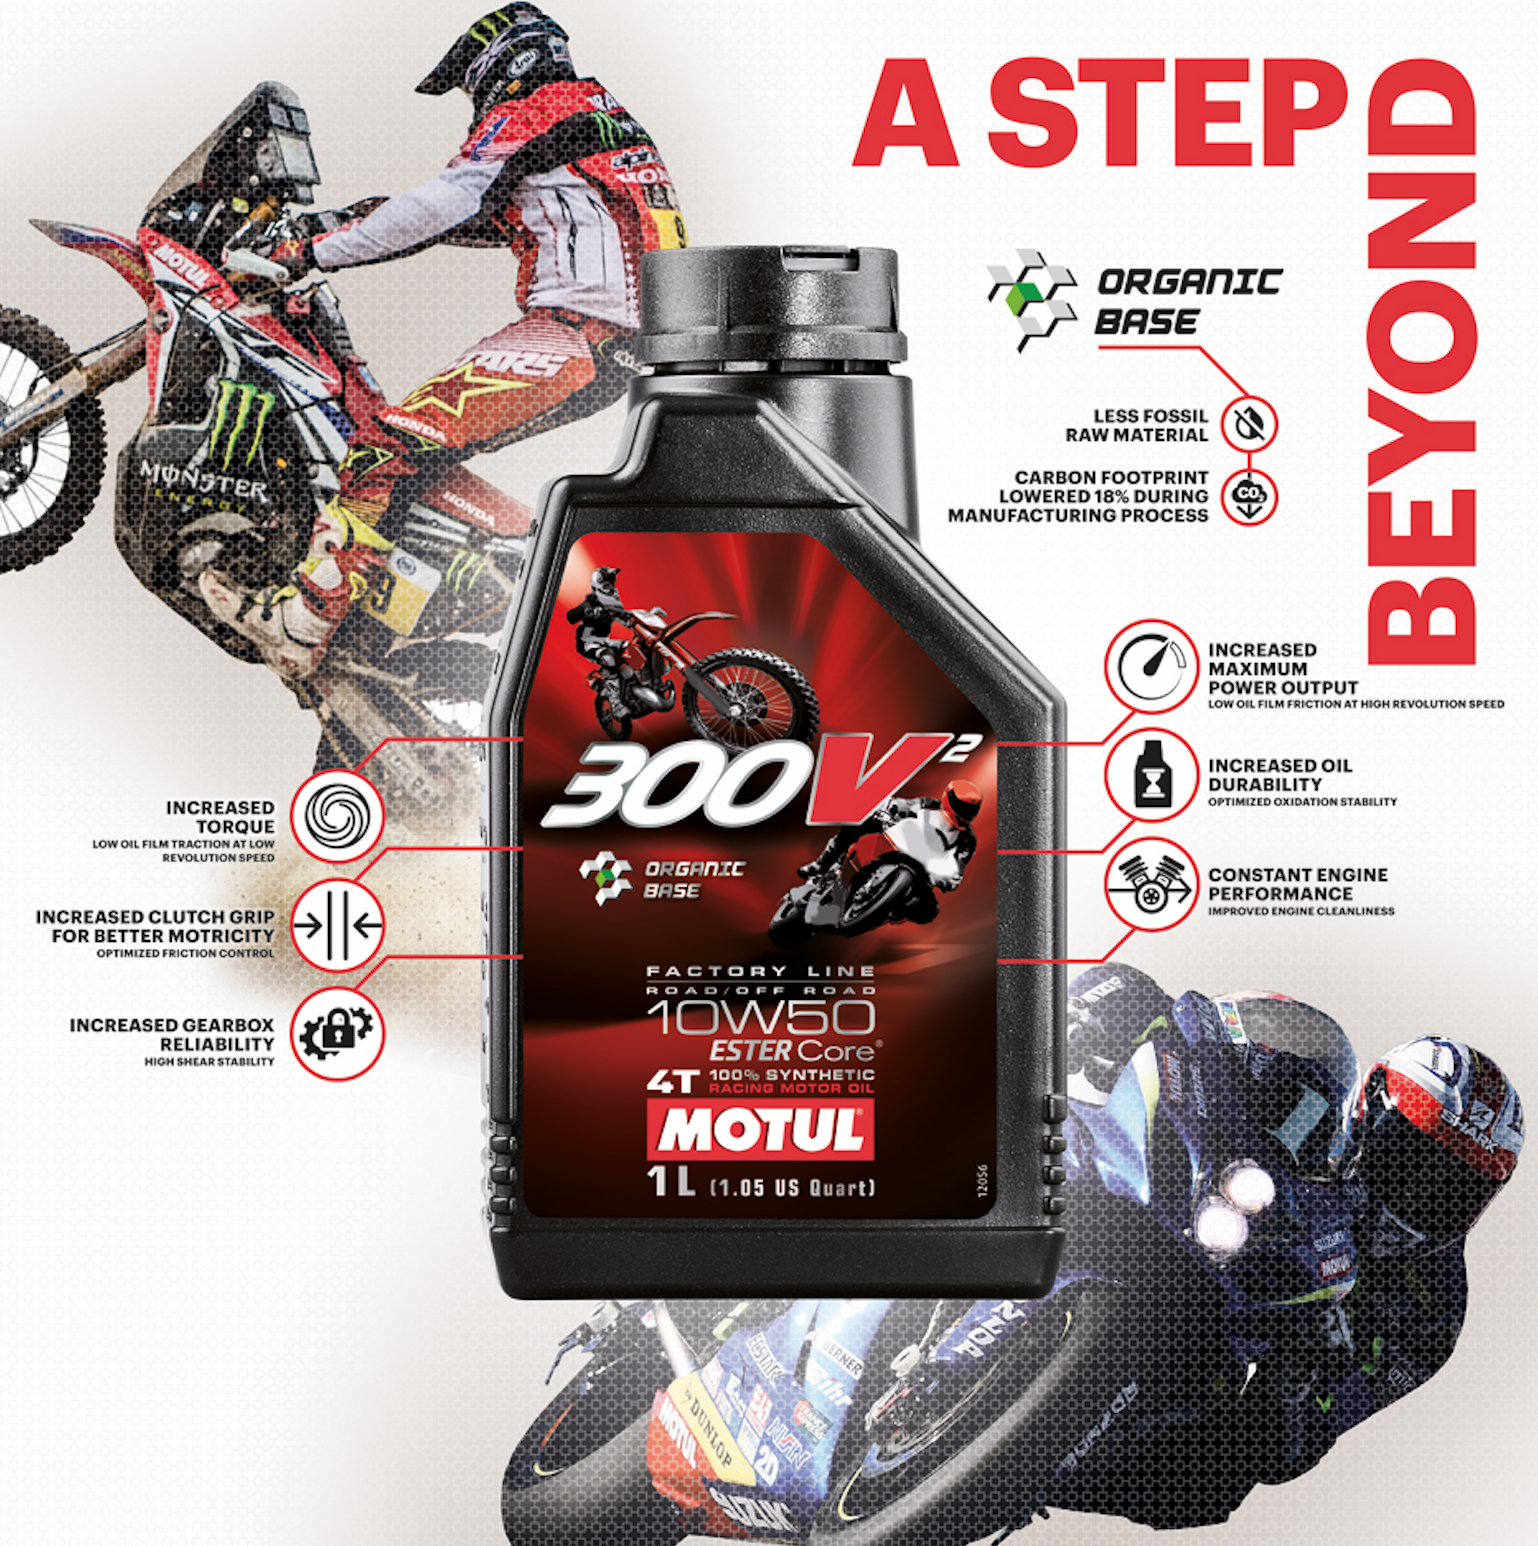 Motul - News/ The Drum - Motul goes a step beyond at EICMA